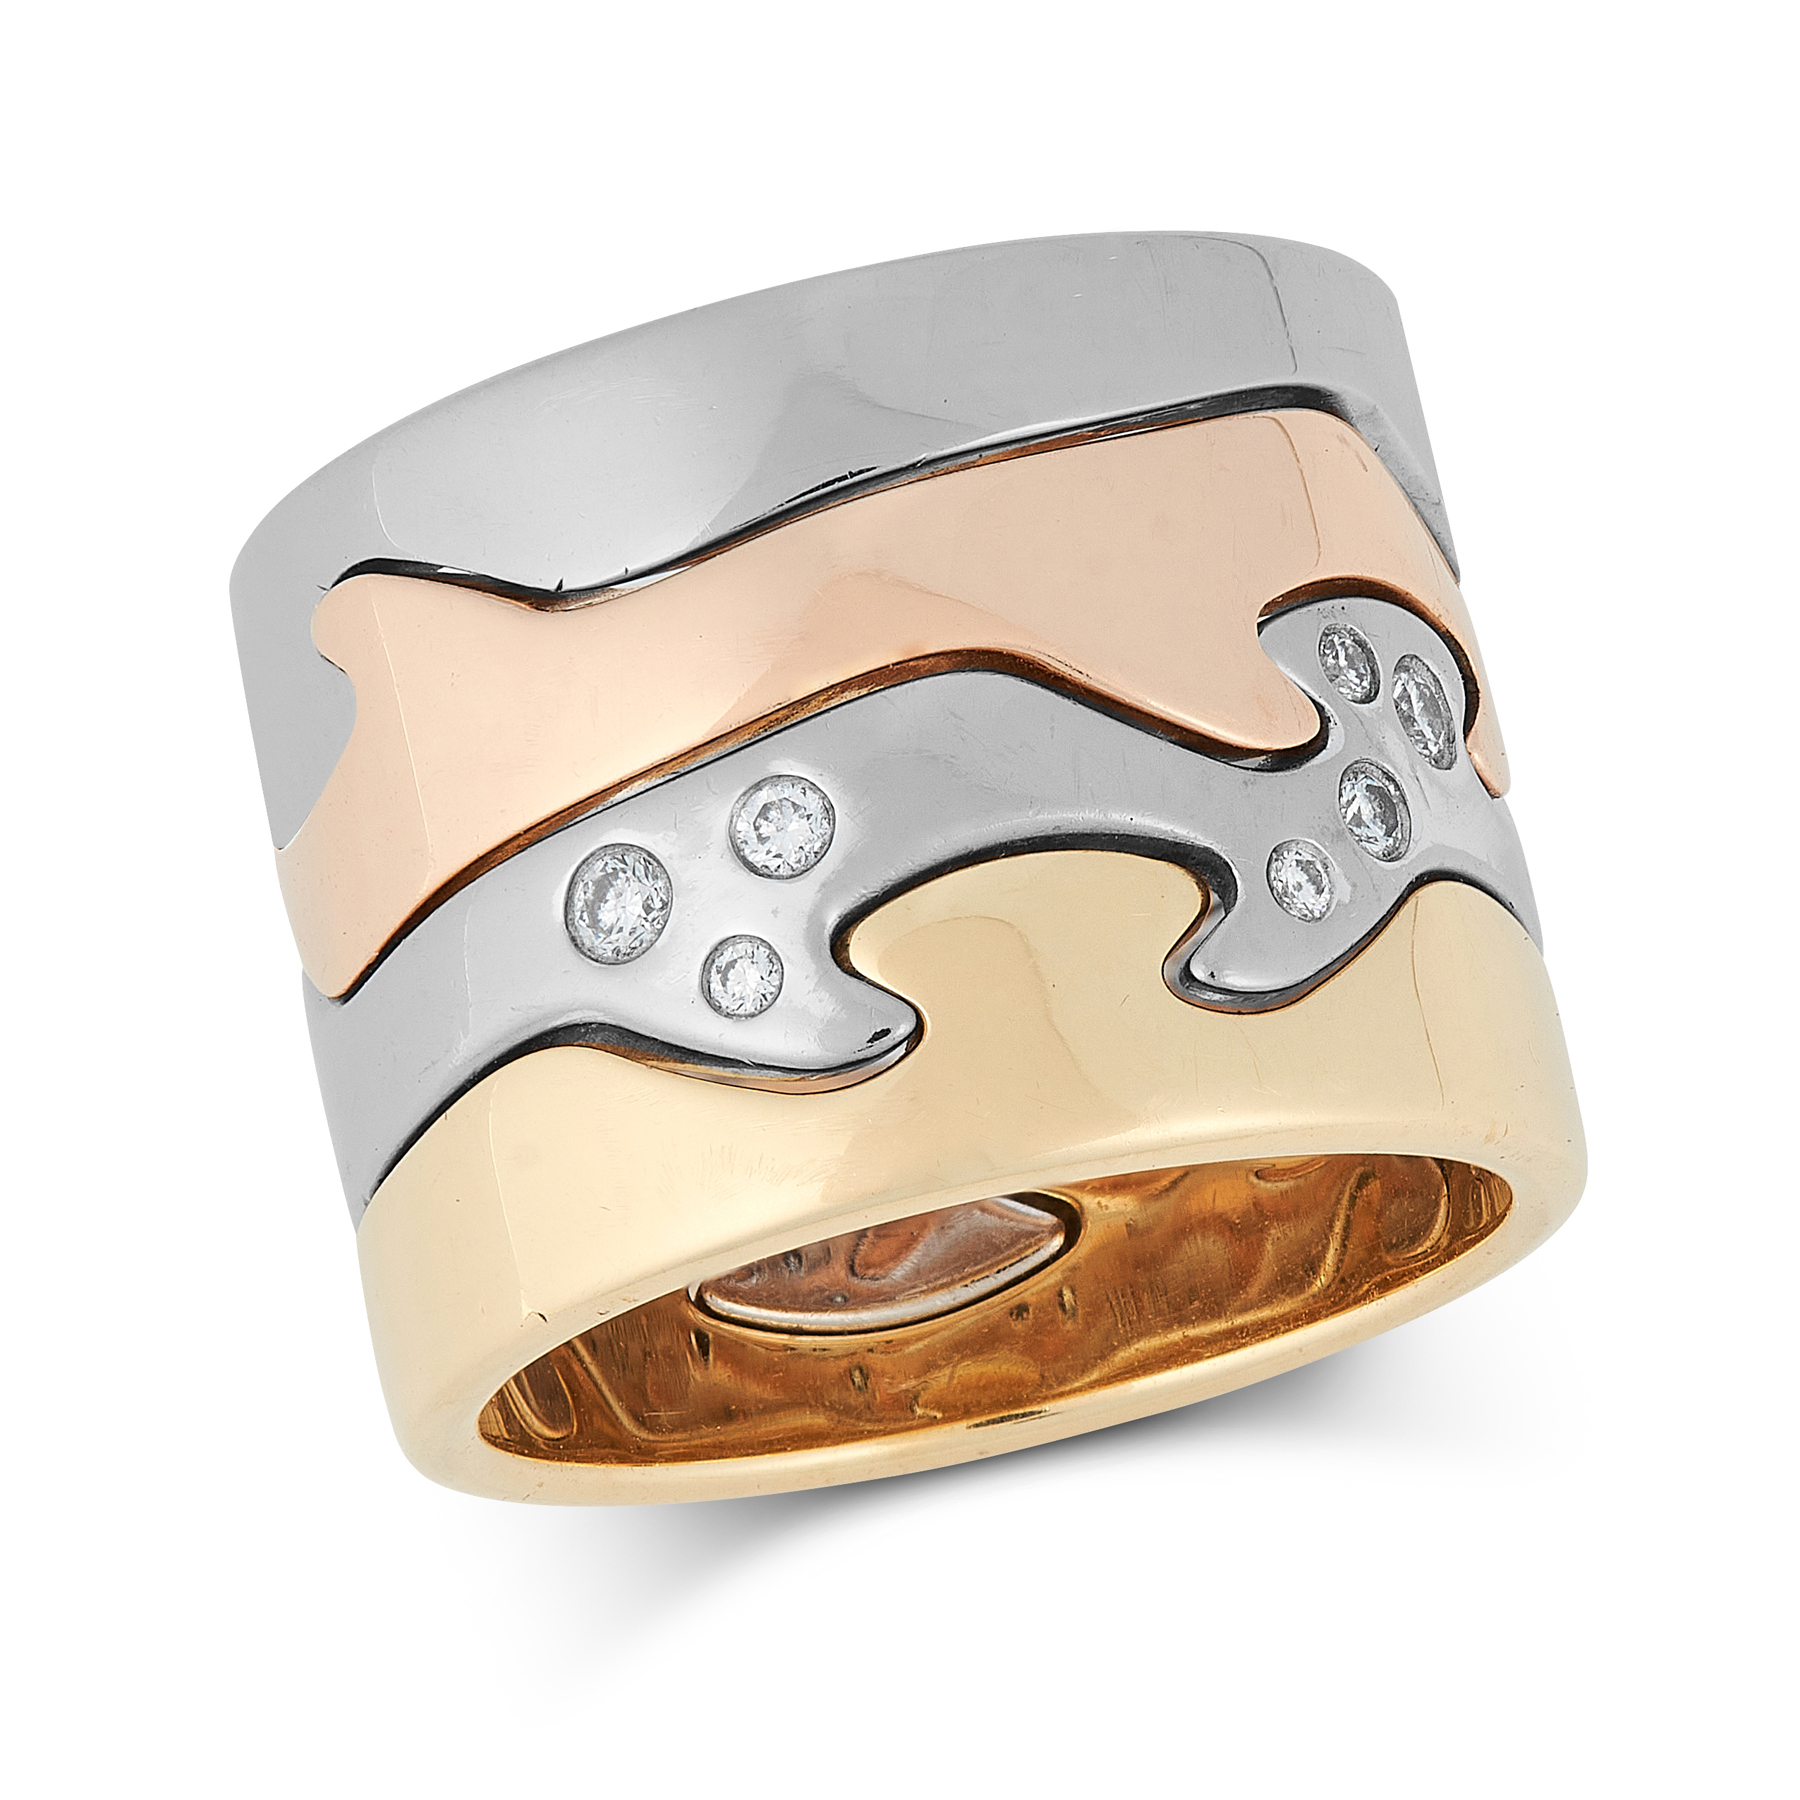 A DIAMOND FUSION STACK RING, GEORG JENSEN in 18ct yellow, white and rose gold, comprising four,